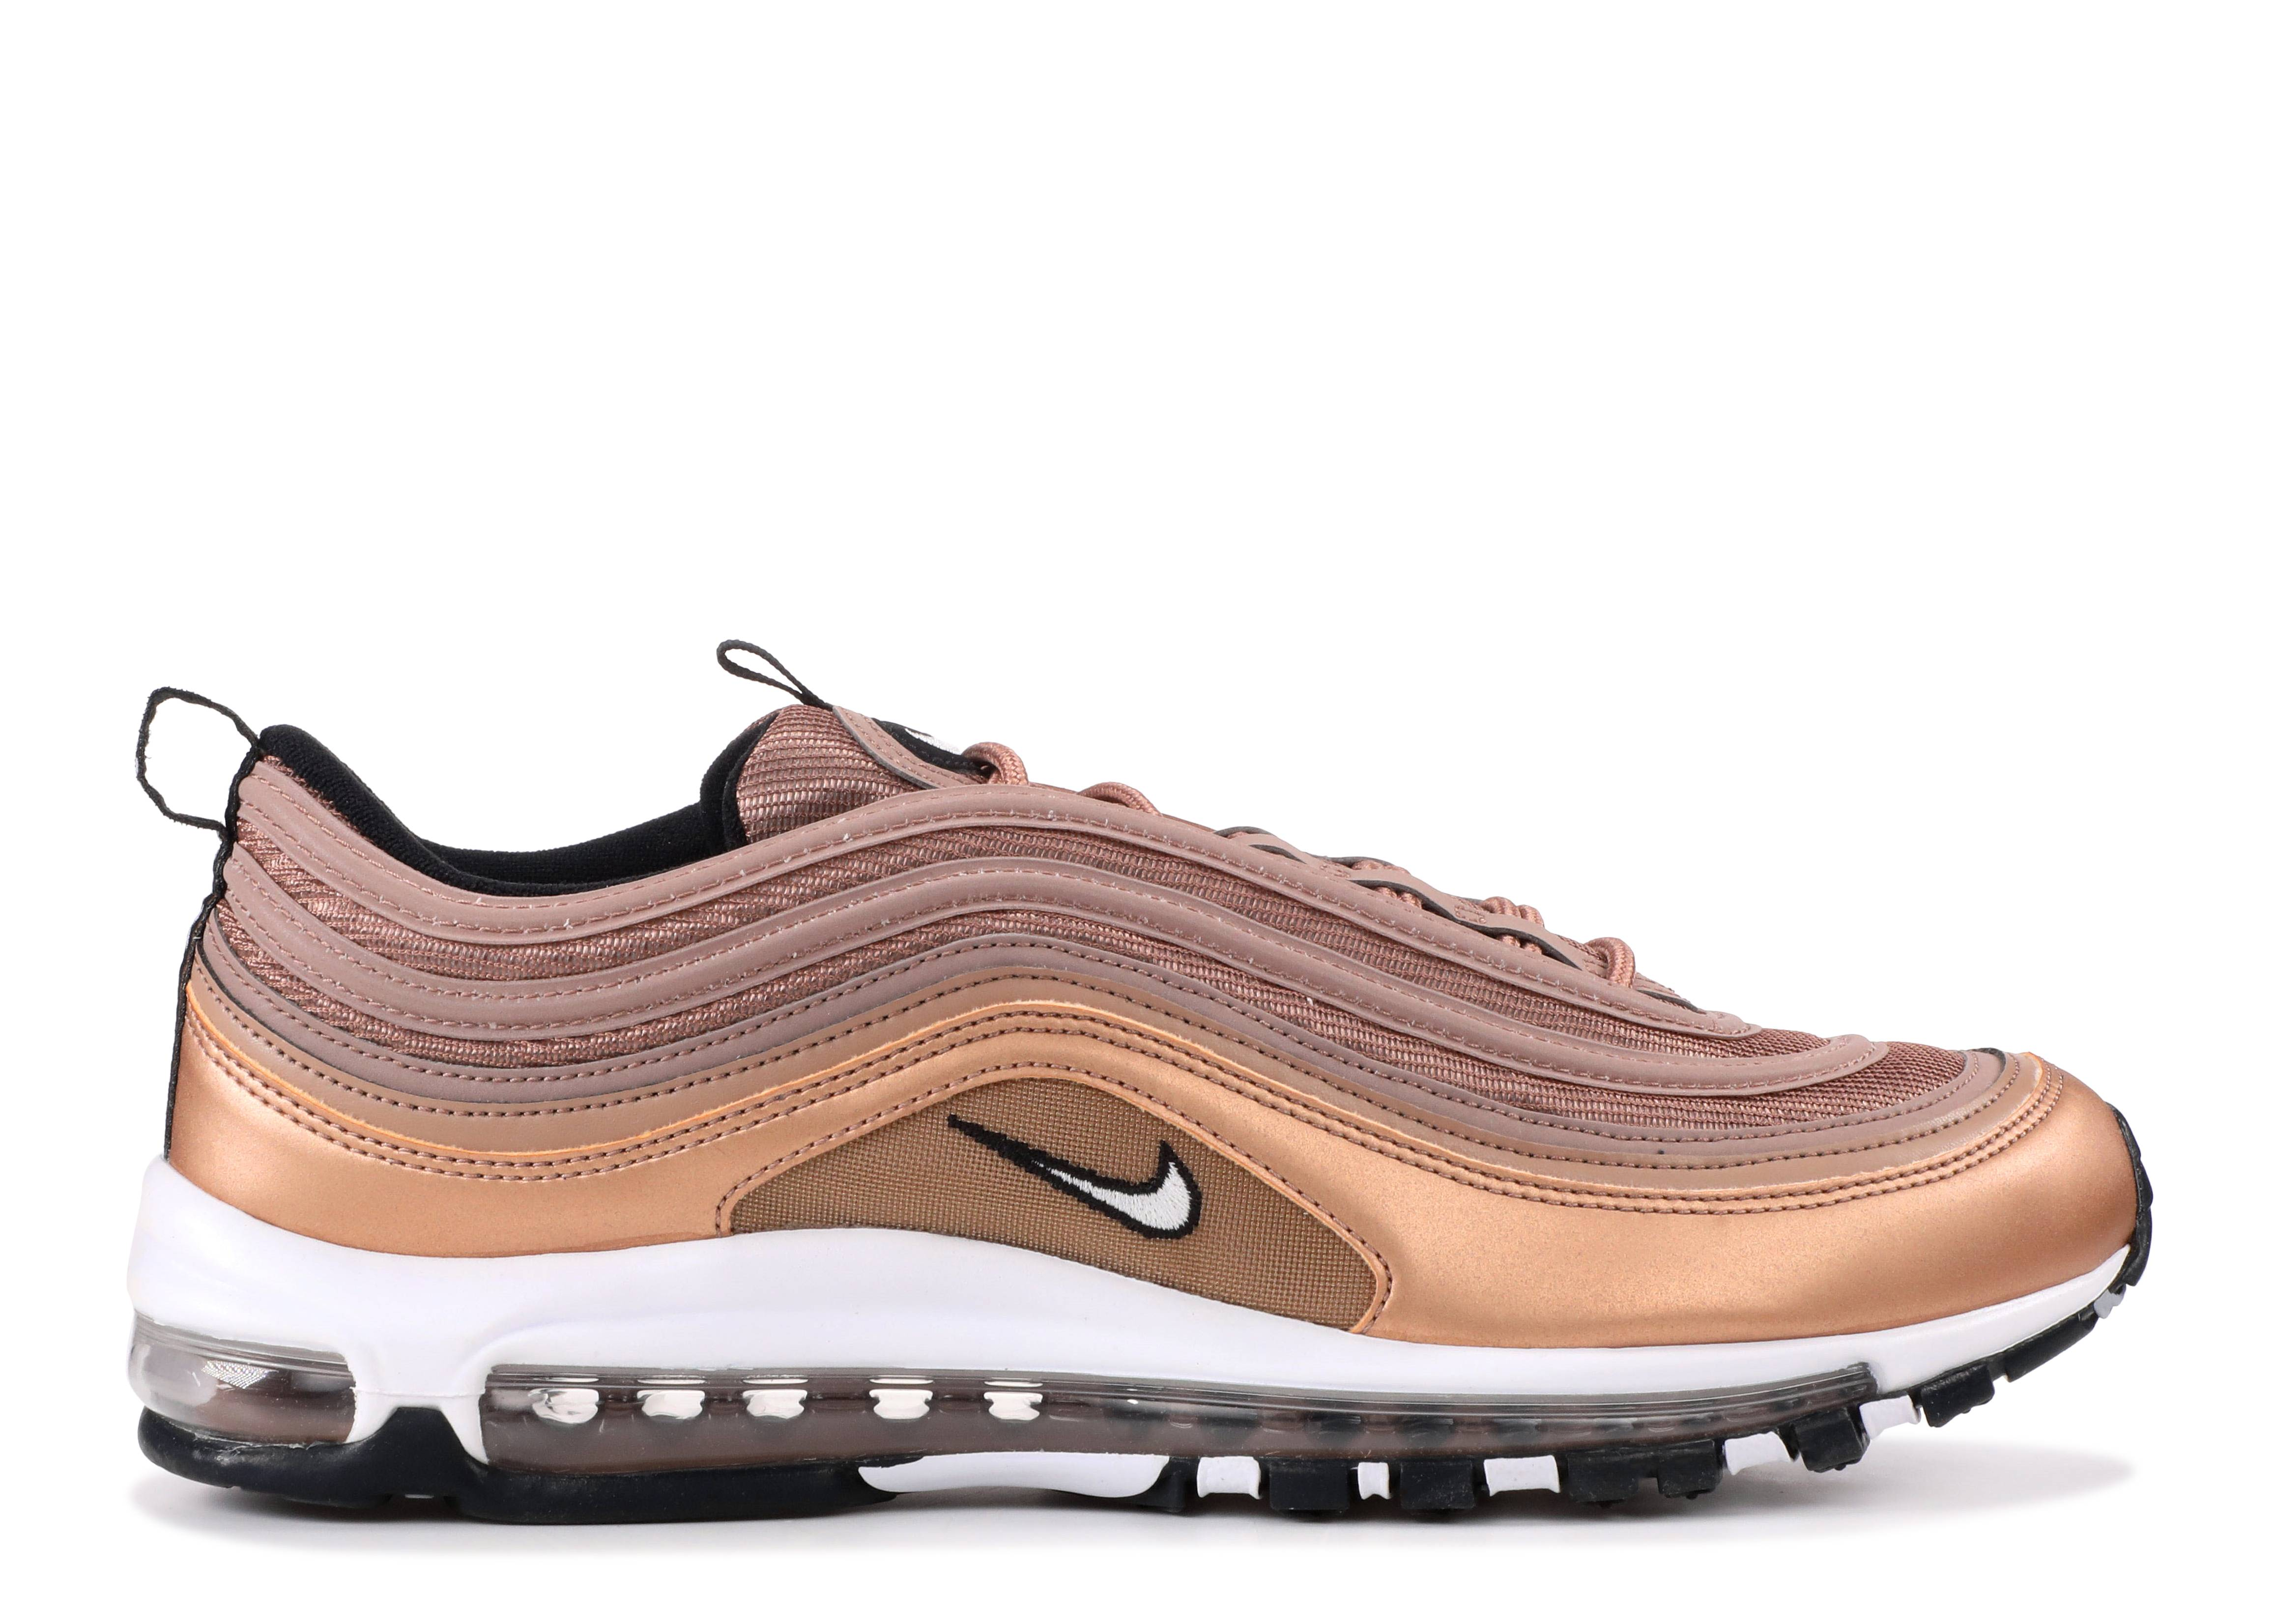 2bee53c9 Air Max 97 - Nike - 921826 200 - desert dust/white | Flight Club